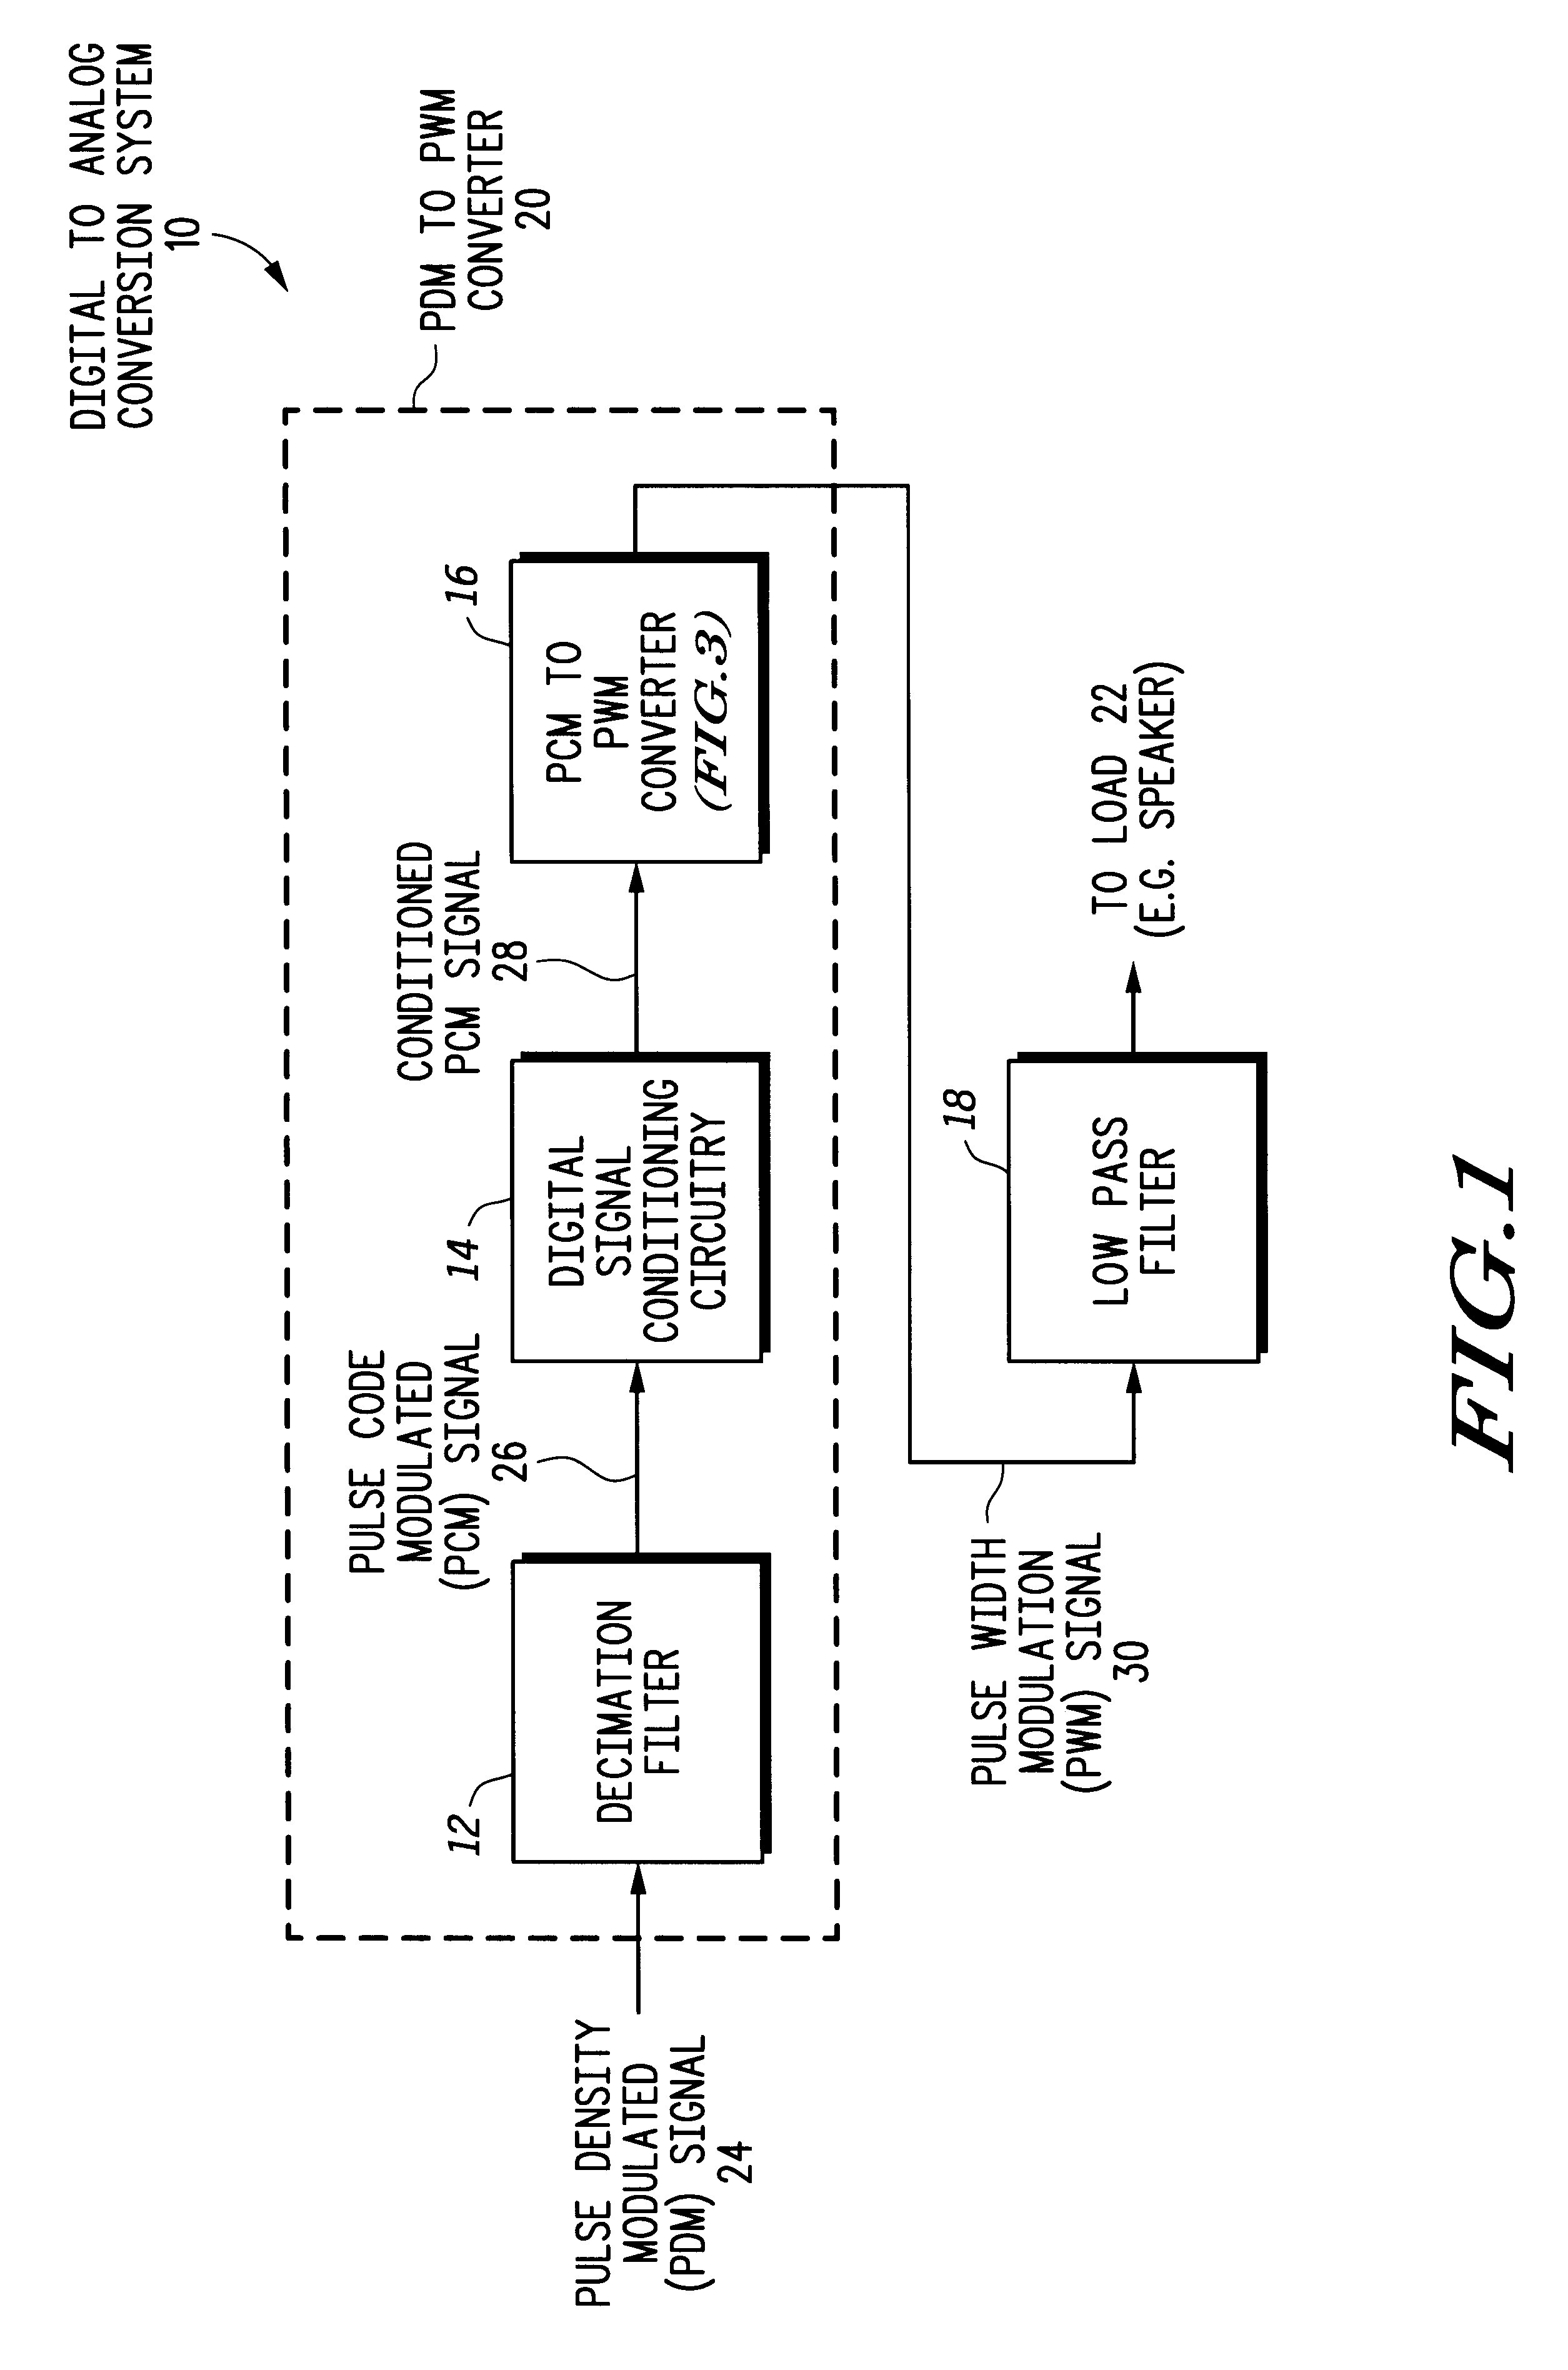 patent us6606044 - method and apparatus for generating a pulse width modulated signal